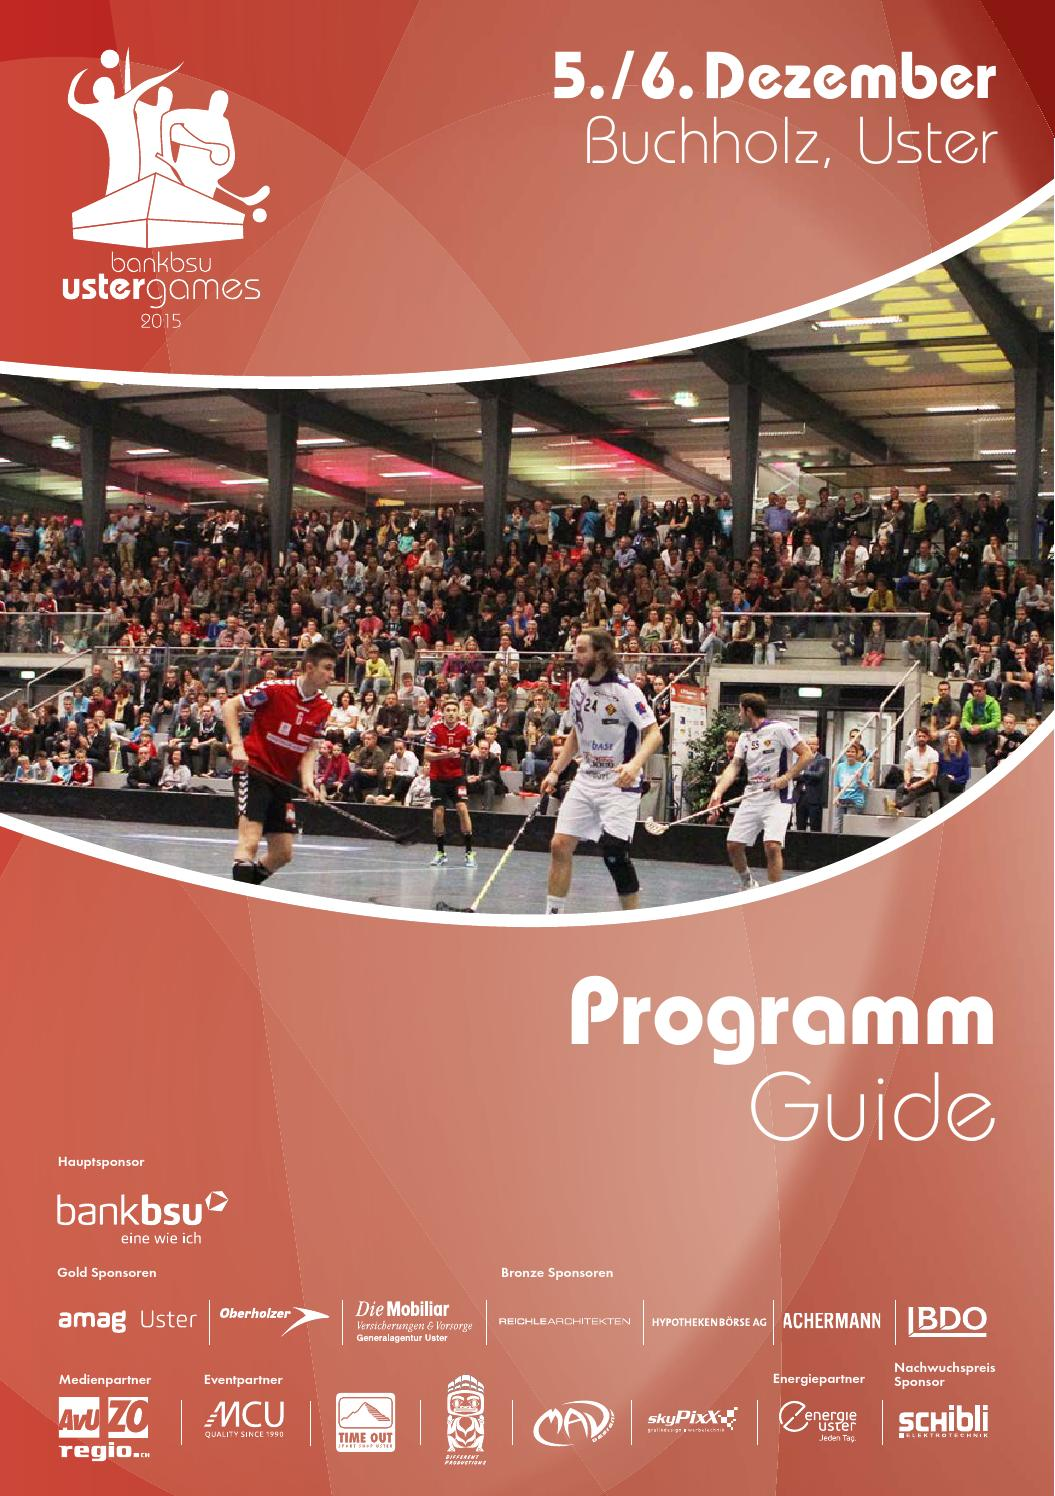 Holz Kaufen Uster Bank Bsu Uster Games Programm Guide 2015 By Uhc Uster Issuu